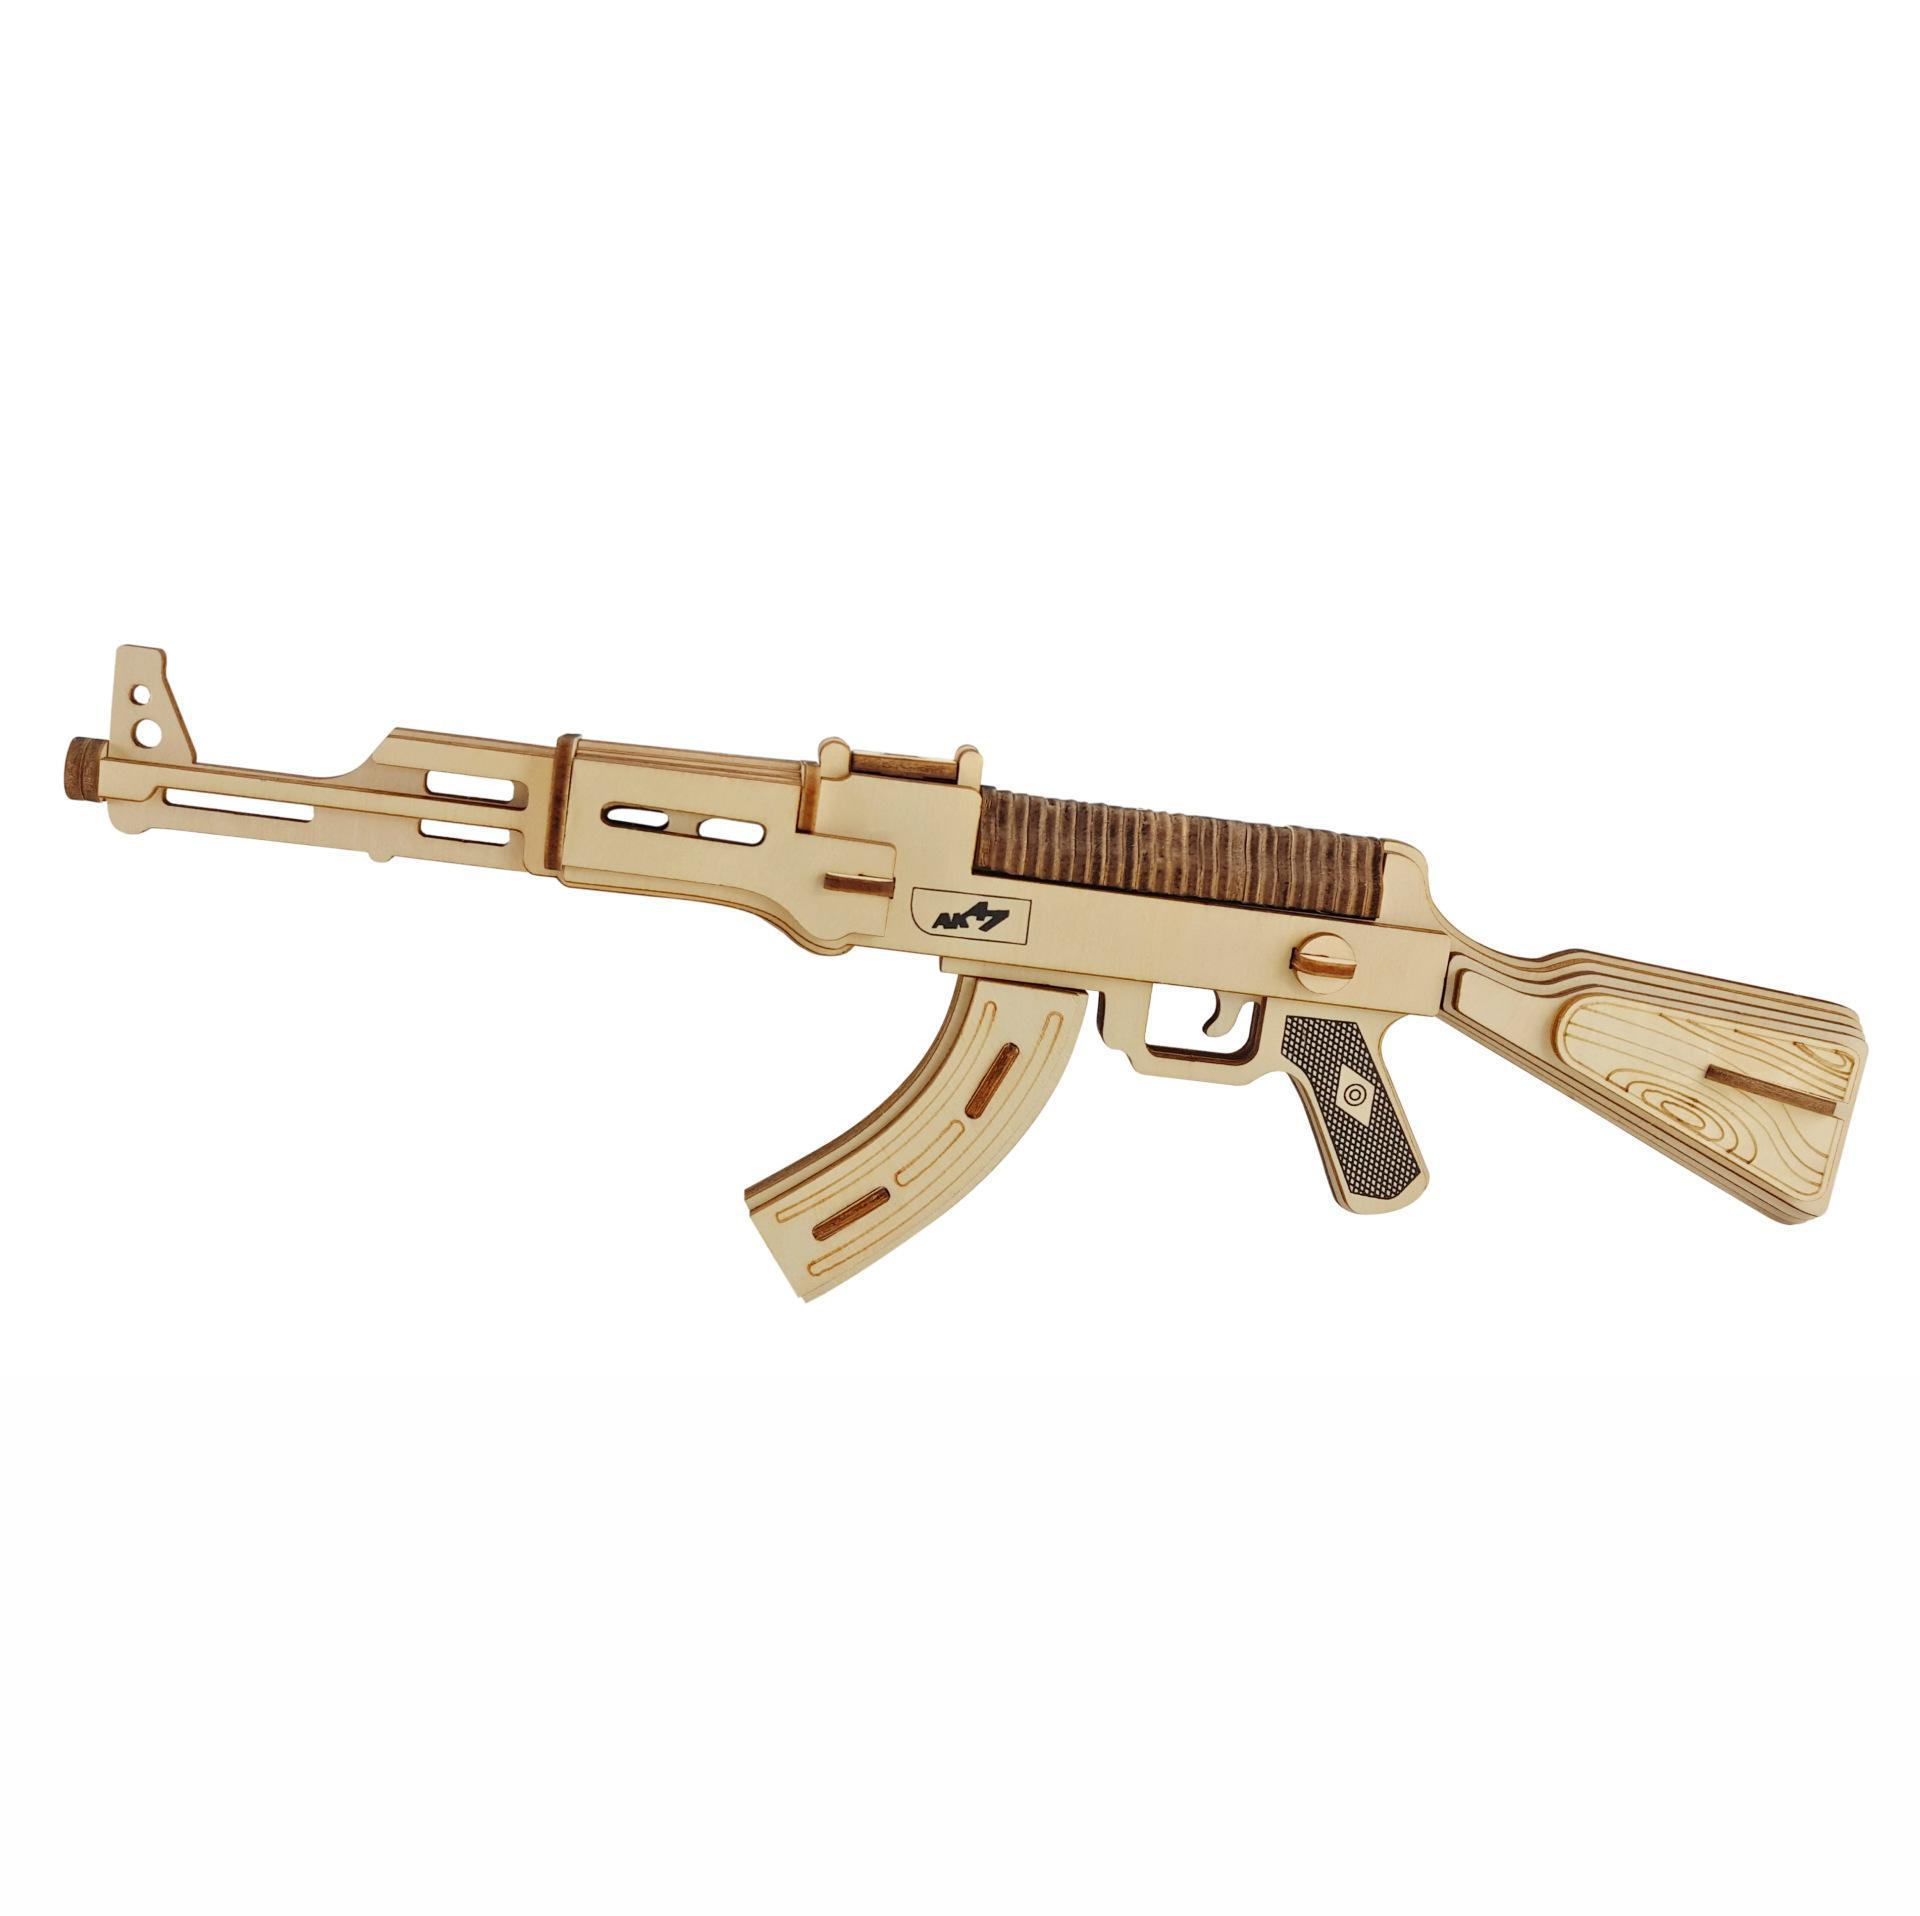 DIY AK47 Submachine Gun Model 3d Three-dimensional Wooden Puzzle Toy Gun For Children Diy Handmade Laser Cutting